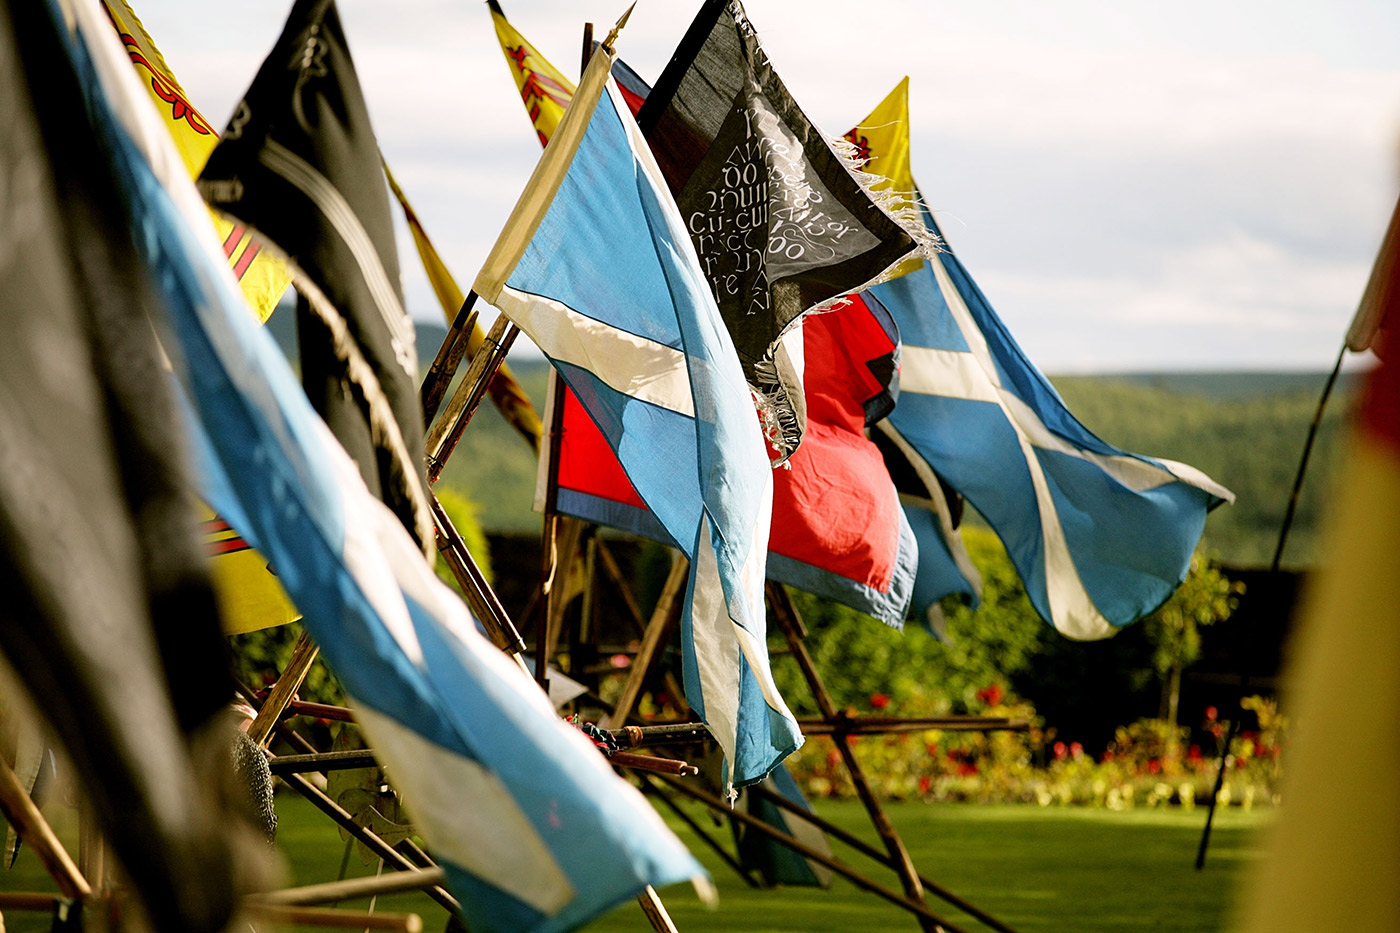 clan and country flags